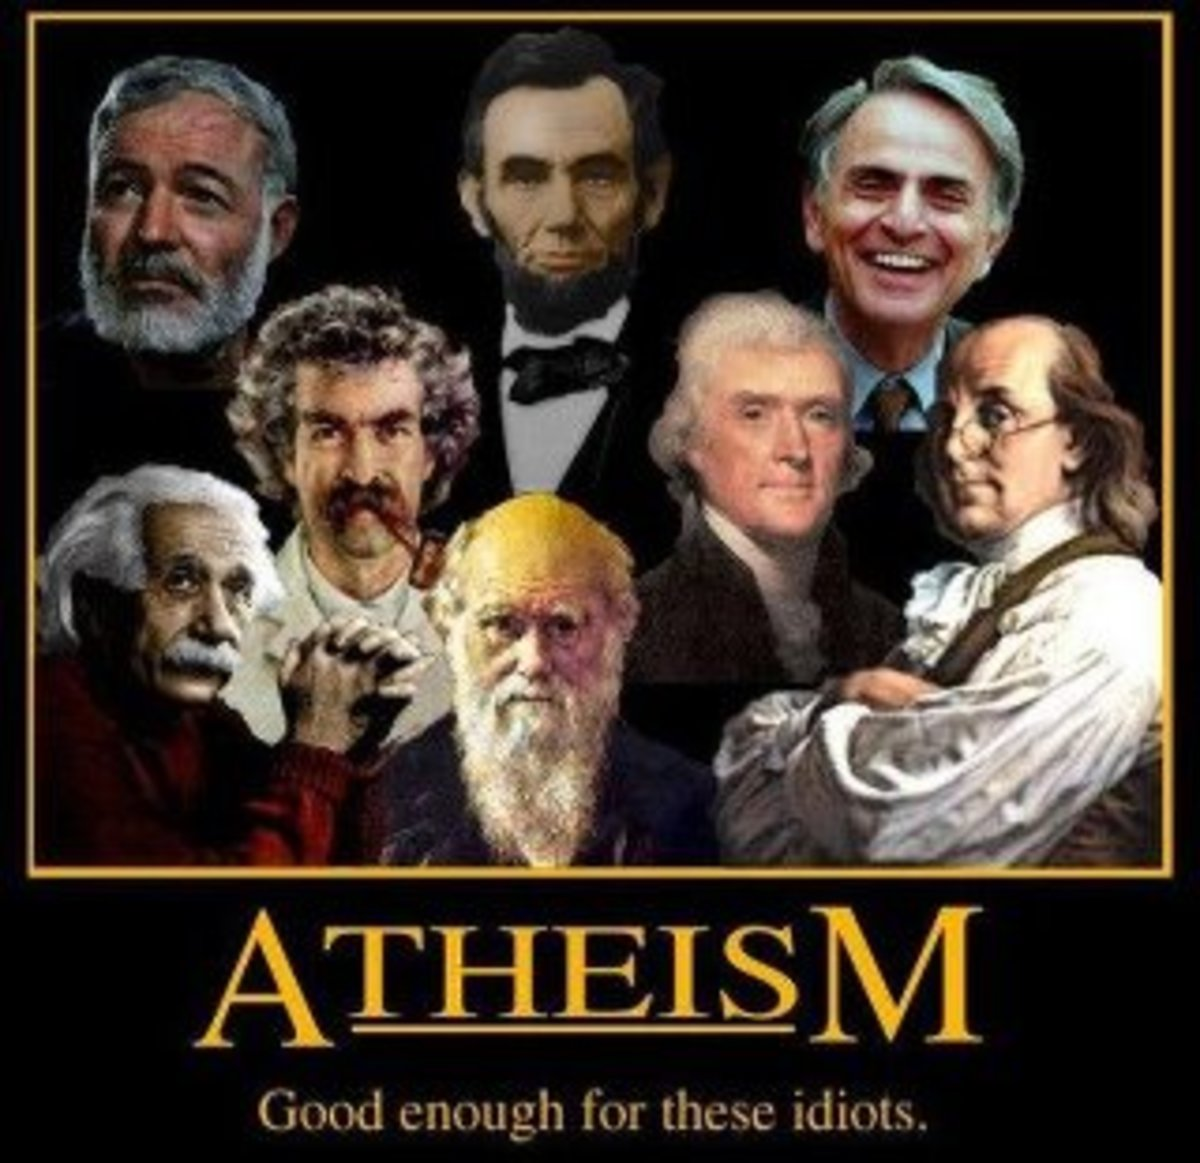 Some of these guys are actually reported atheists, agnostics or fit into the 'other' category.